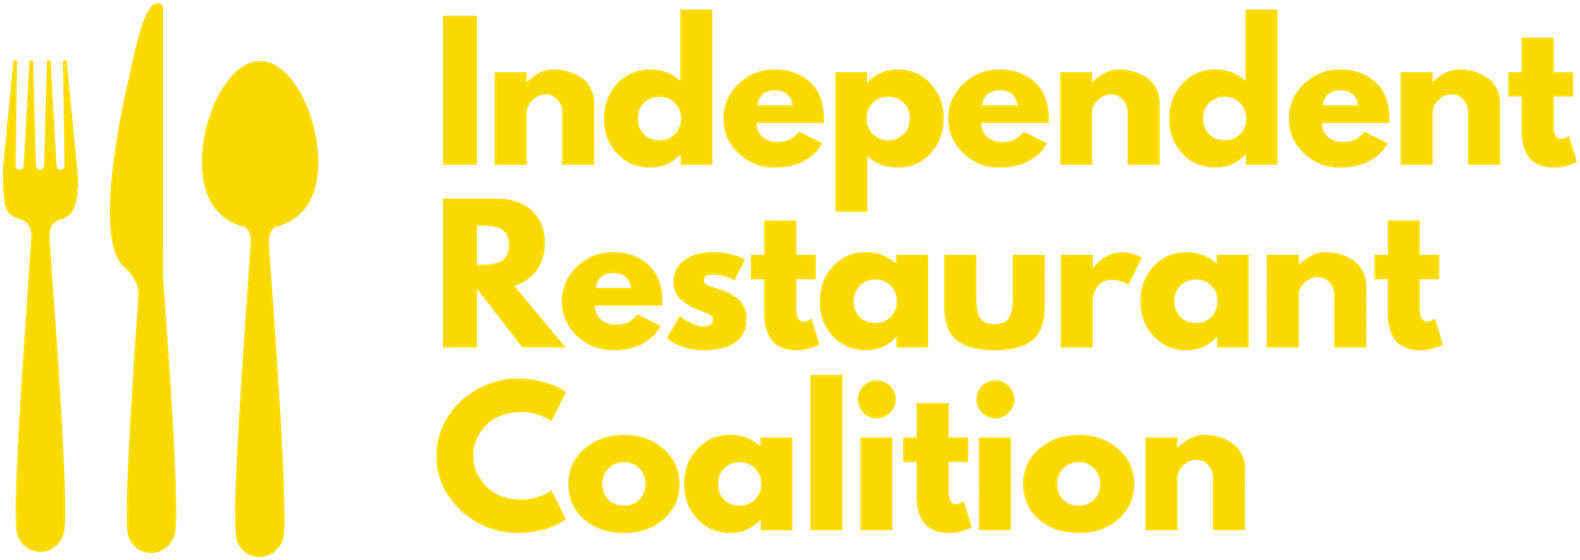 IRC - Independent Restaurant Coalition